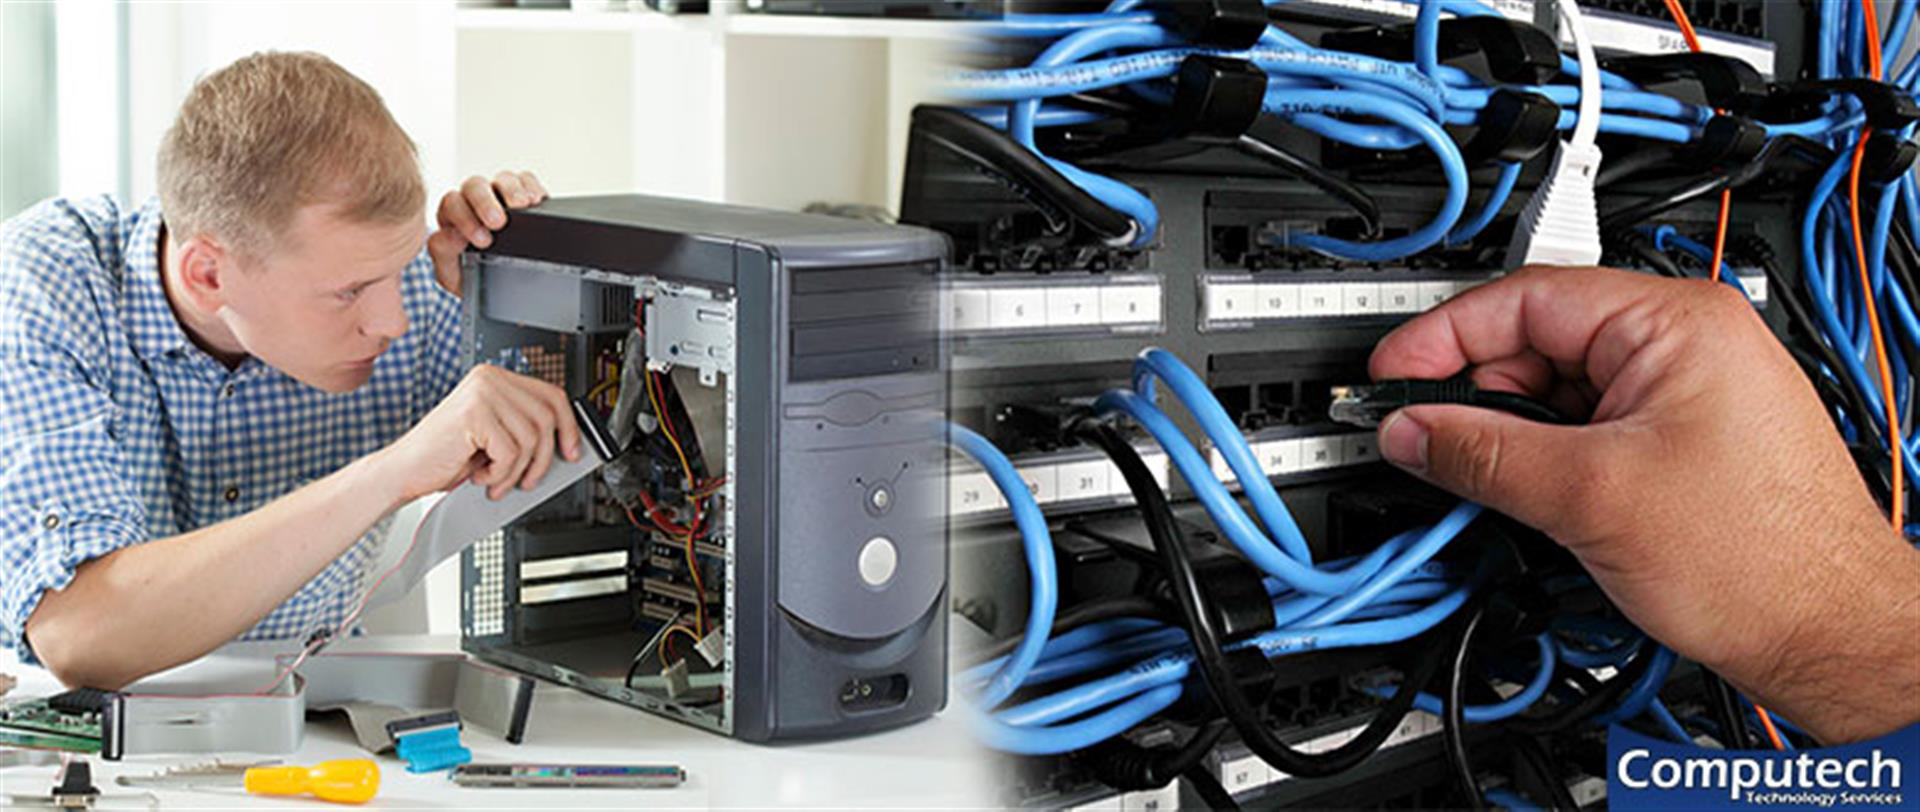 Brownsville Tennessee Onsite Computer & Printer Repair, Networking, Voice & Data Cabling Services